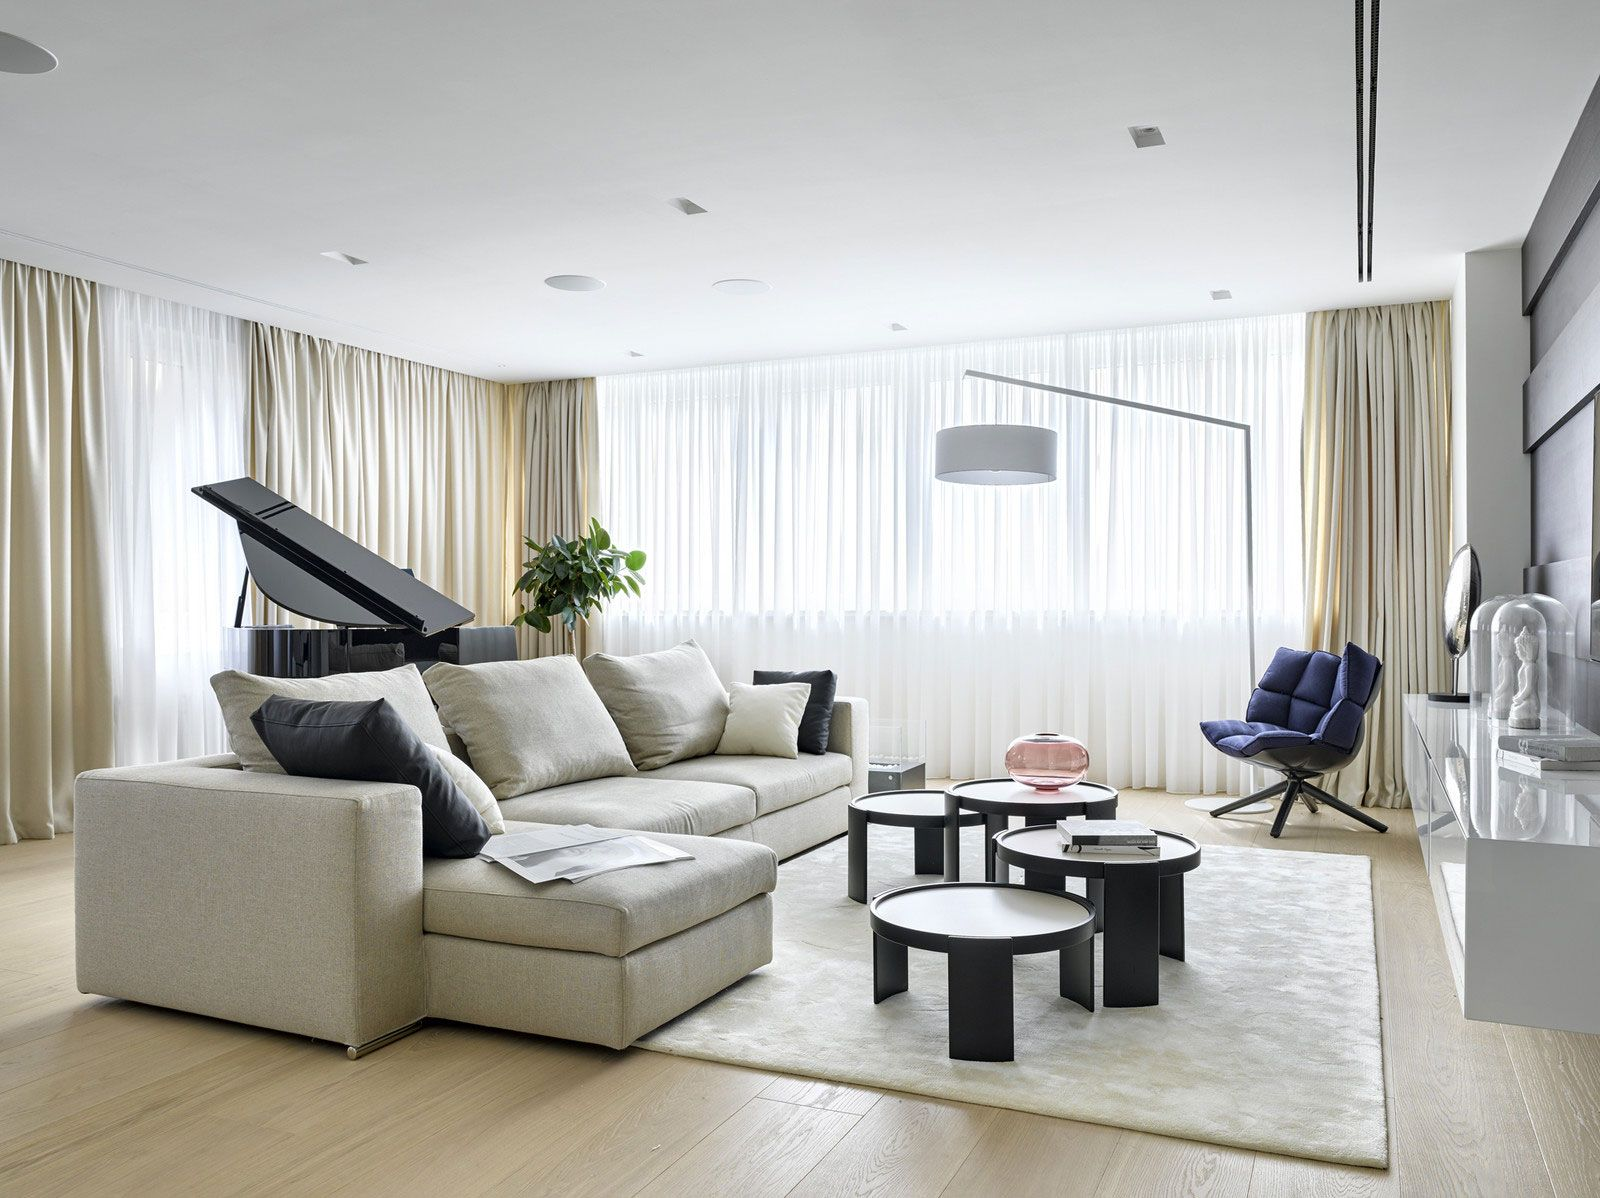 apartments and condos design projects small ideas best about ...